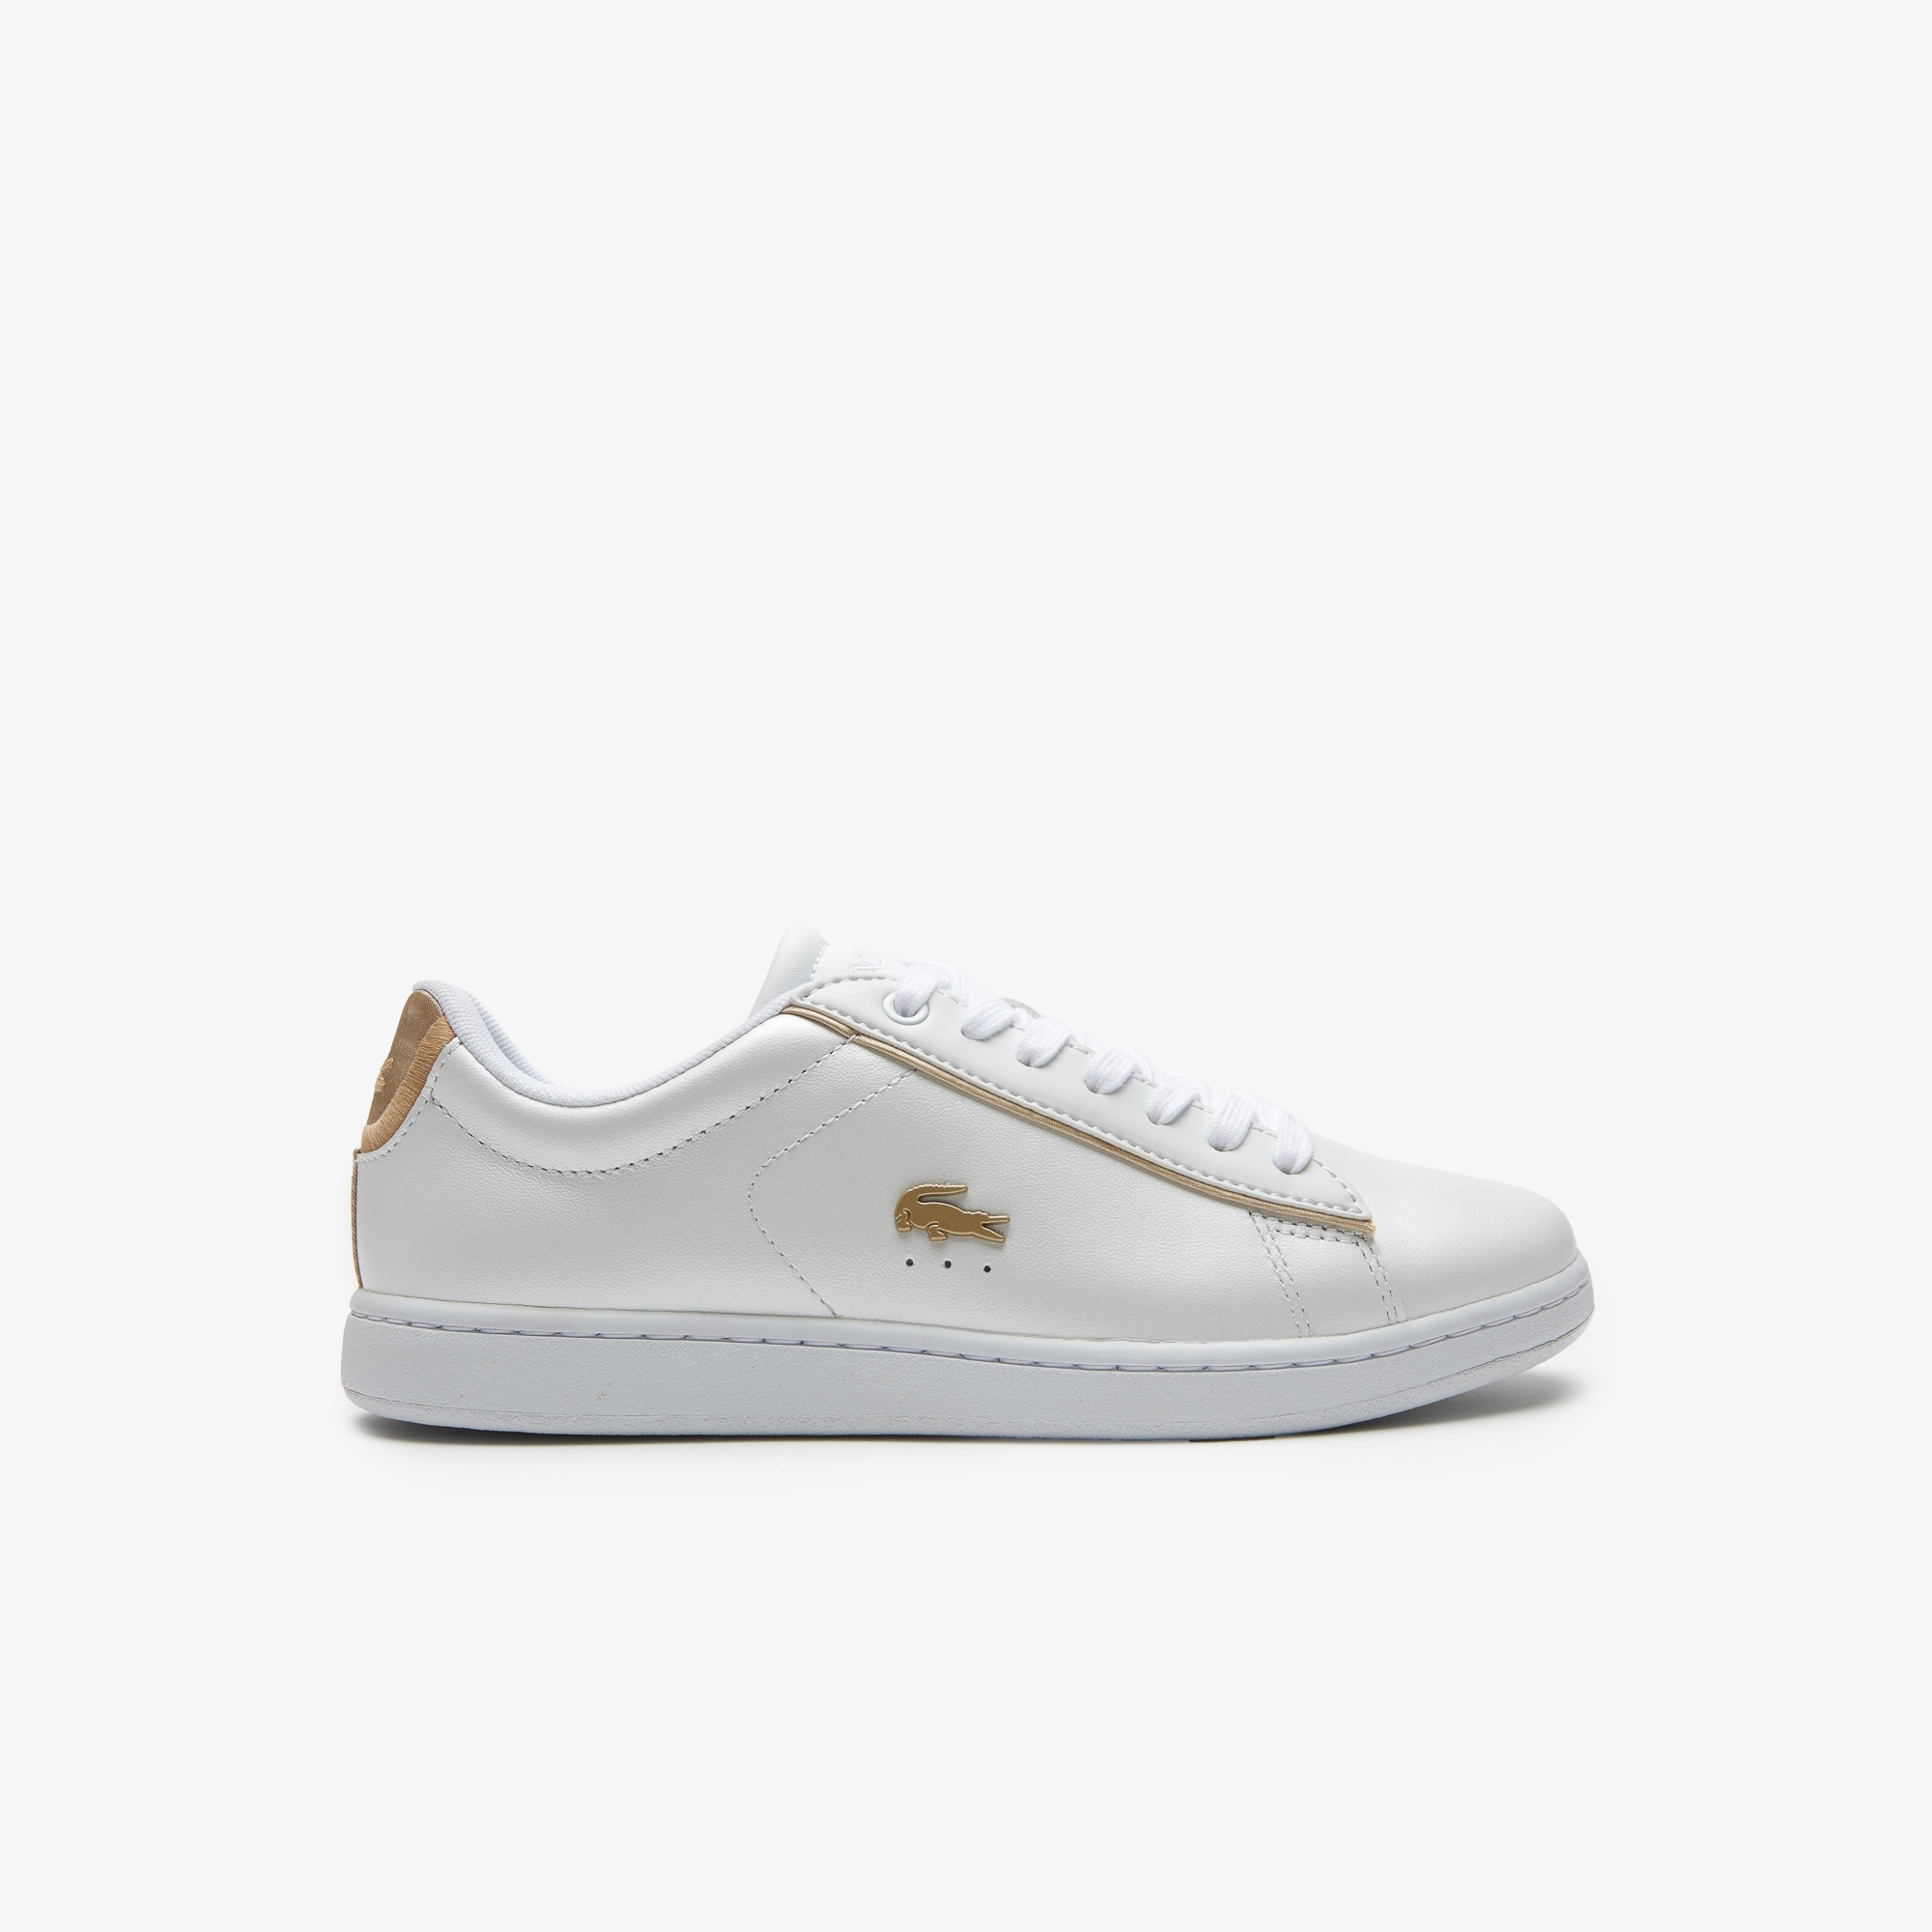 cb8f19974f Sneakers Carnaby Femme En Evo NacréLacoste Cuir GMSUpVqz